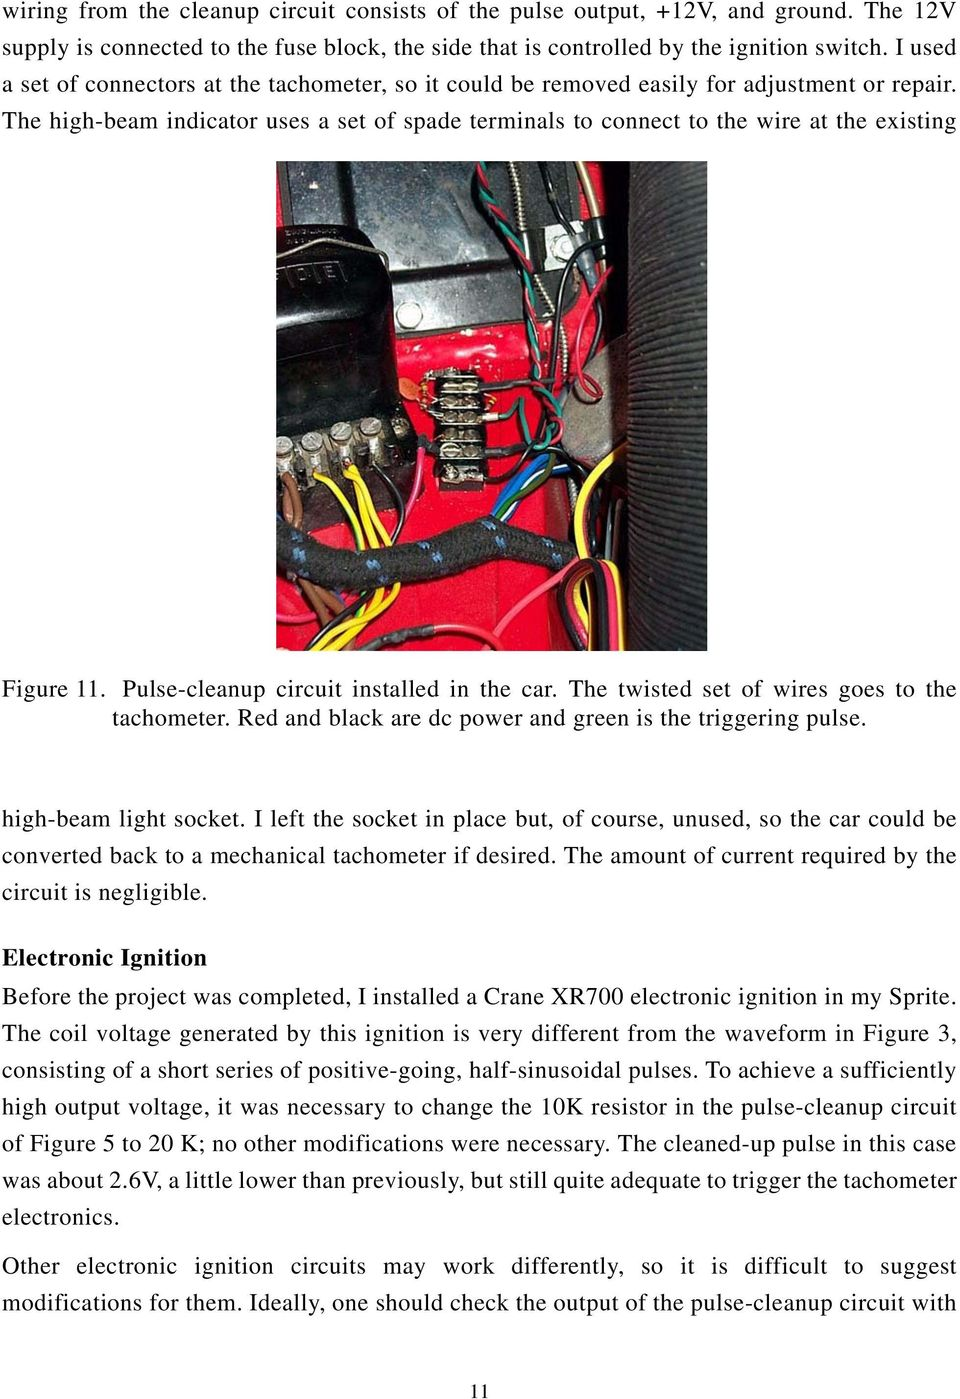 Austin Healey Sprite Electronic Tachometer Conversion Pdf Car Circuit Schematic Diagram The High Beam Indicator Uses A Set Of Spade Terminals To Connect Wire